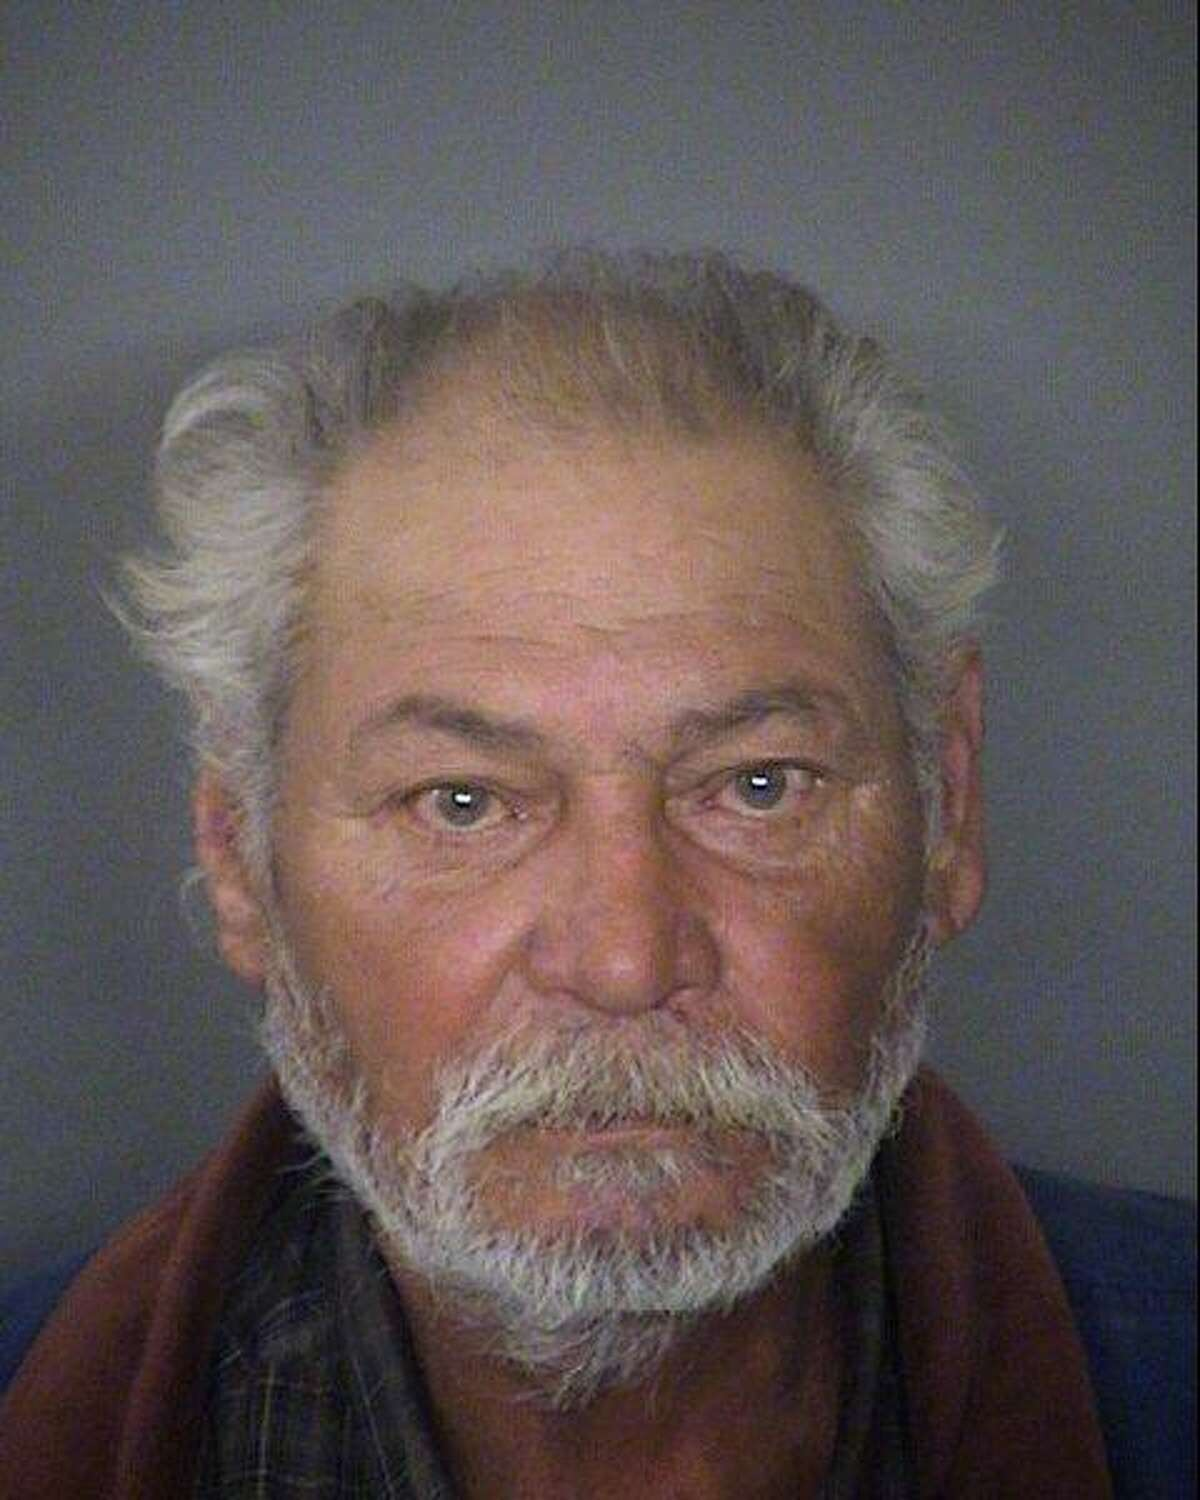 Charles Massiatte, driving while intoxicated 3rd or more